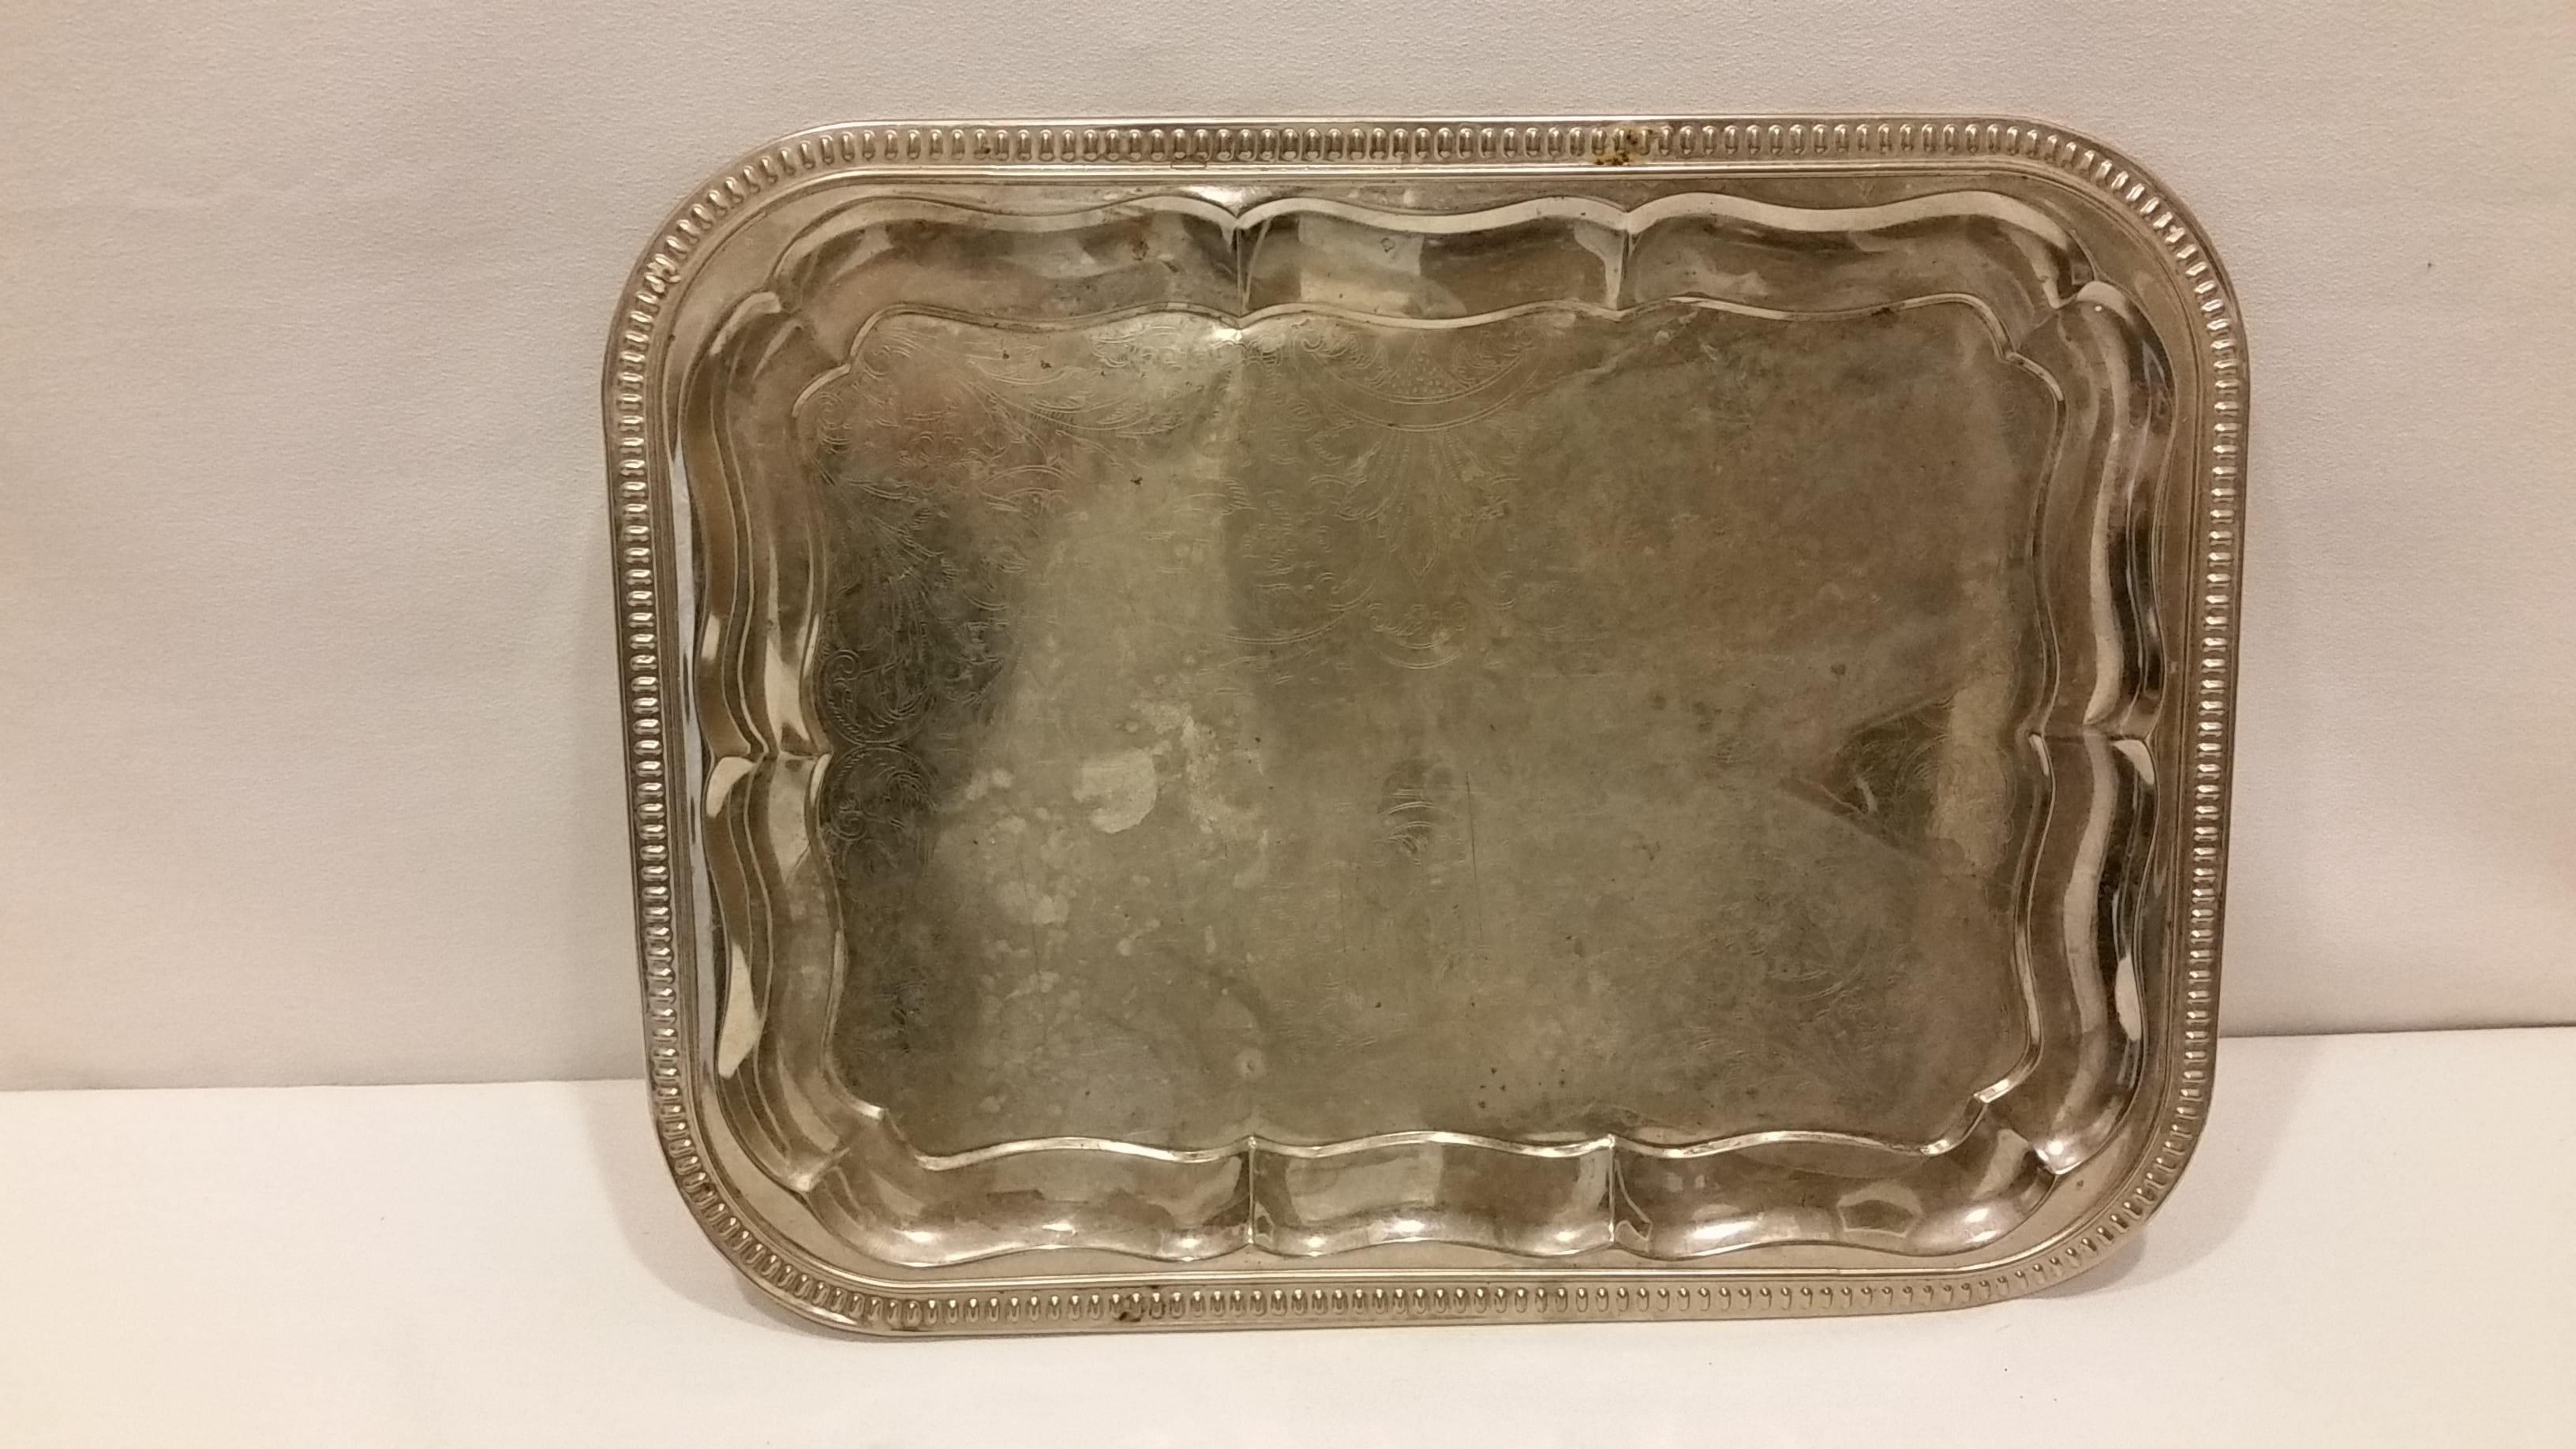 Tray - Silver Rectangle Floral Design